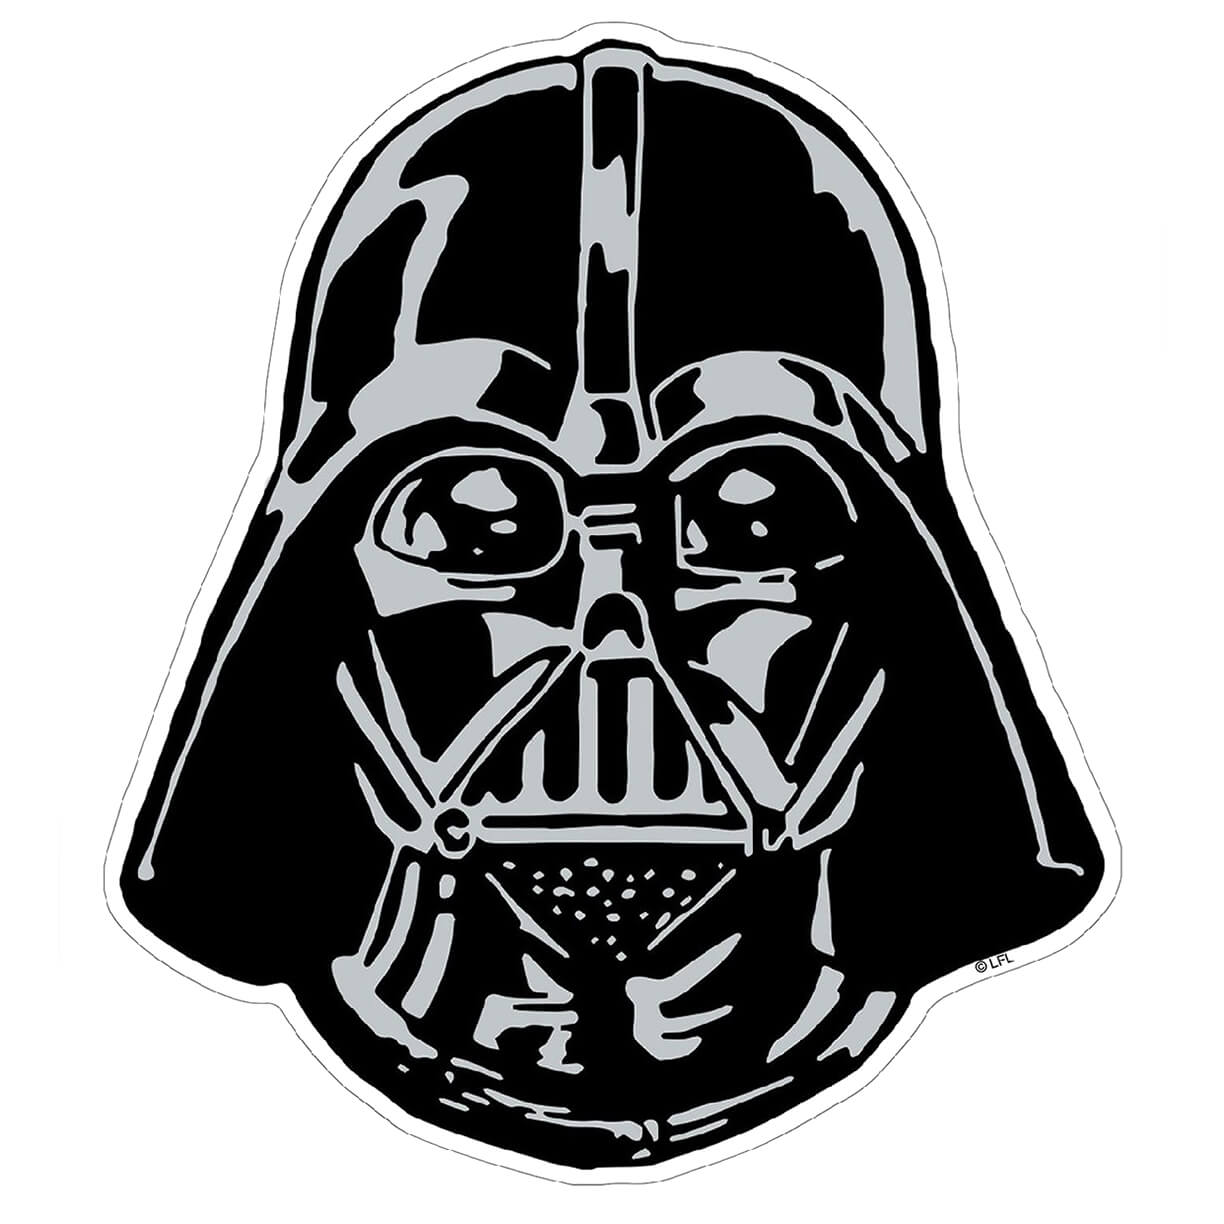 Star Wars Darth Vader Helmet Maxi Wall Sticker